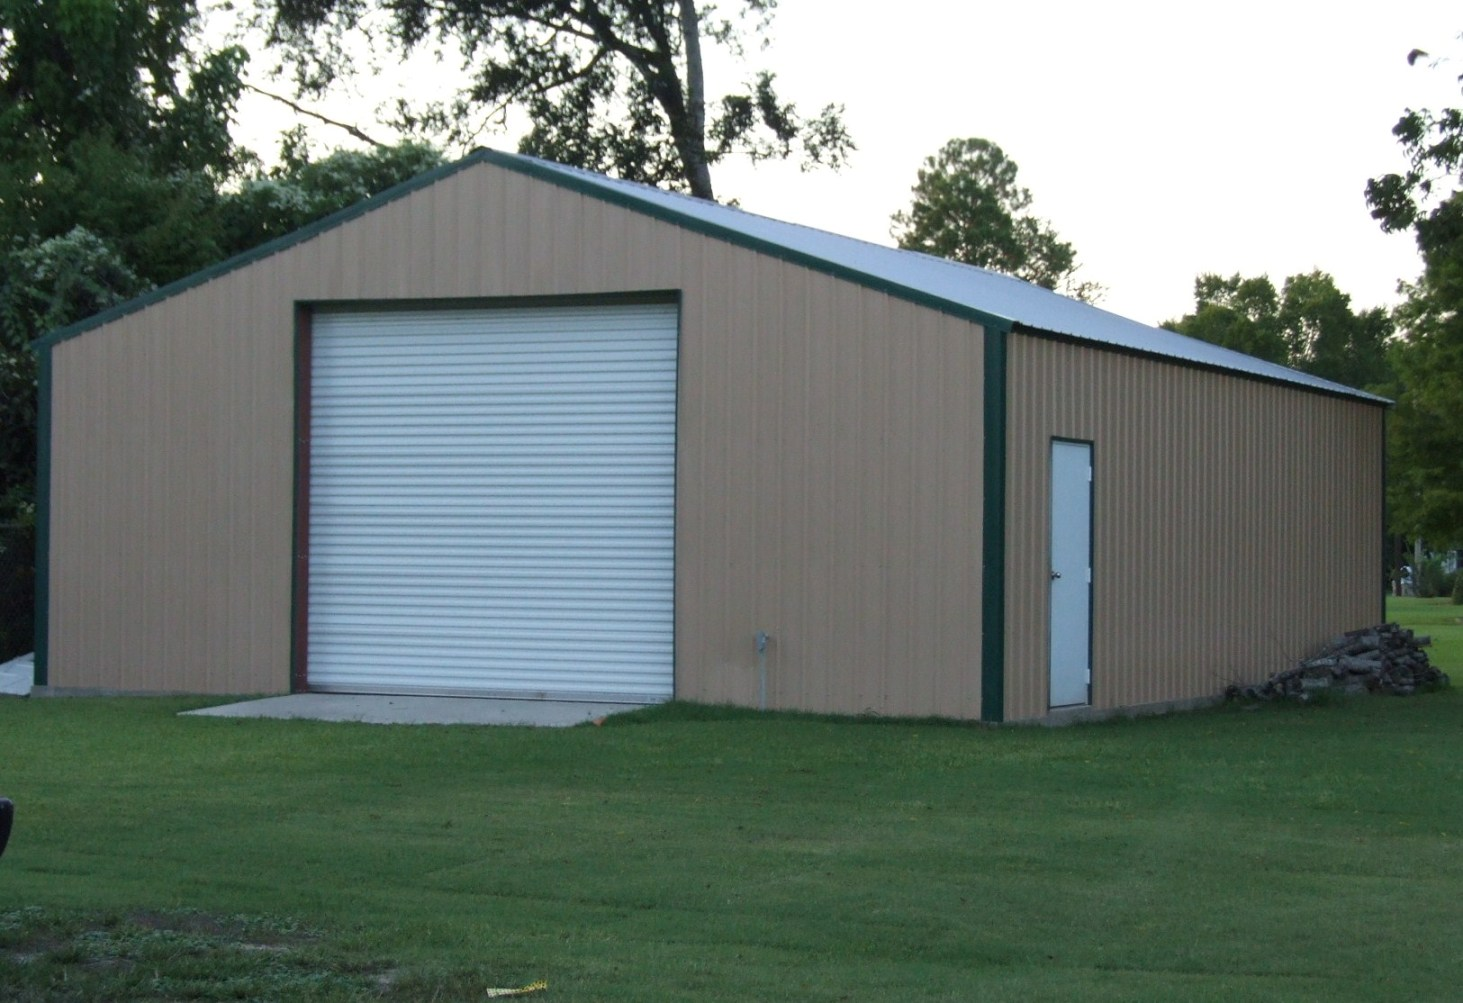 Metal Buildings into homes San Antonio New Braunfels leases